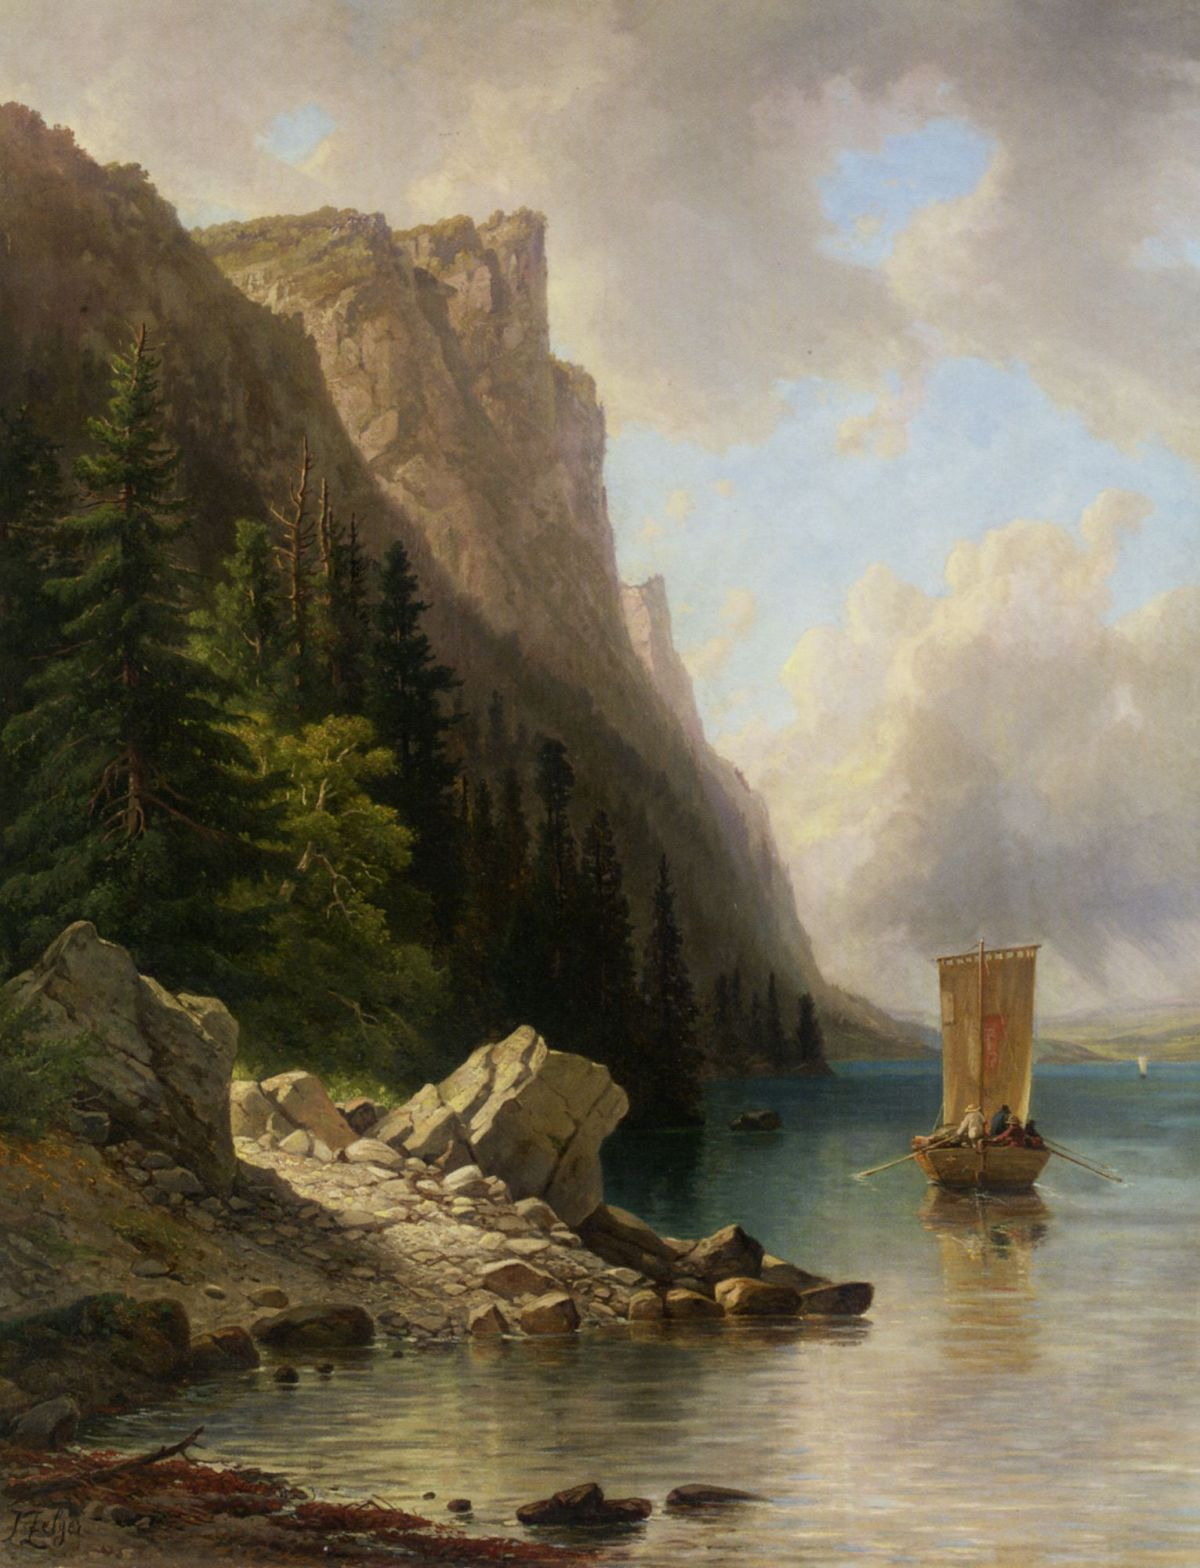 Ships Approaching the Shore by Joseph Zelger